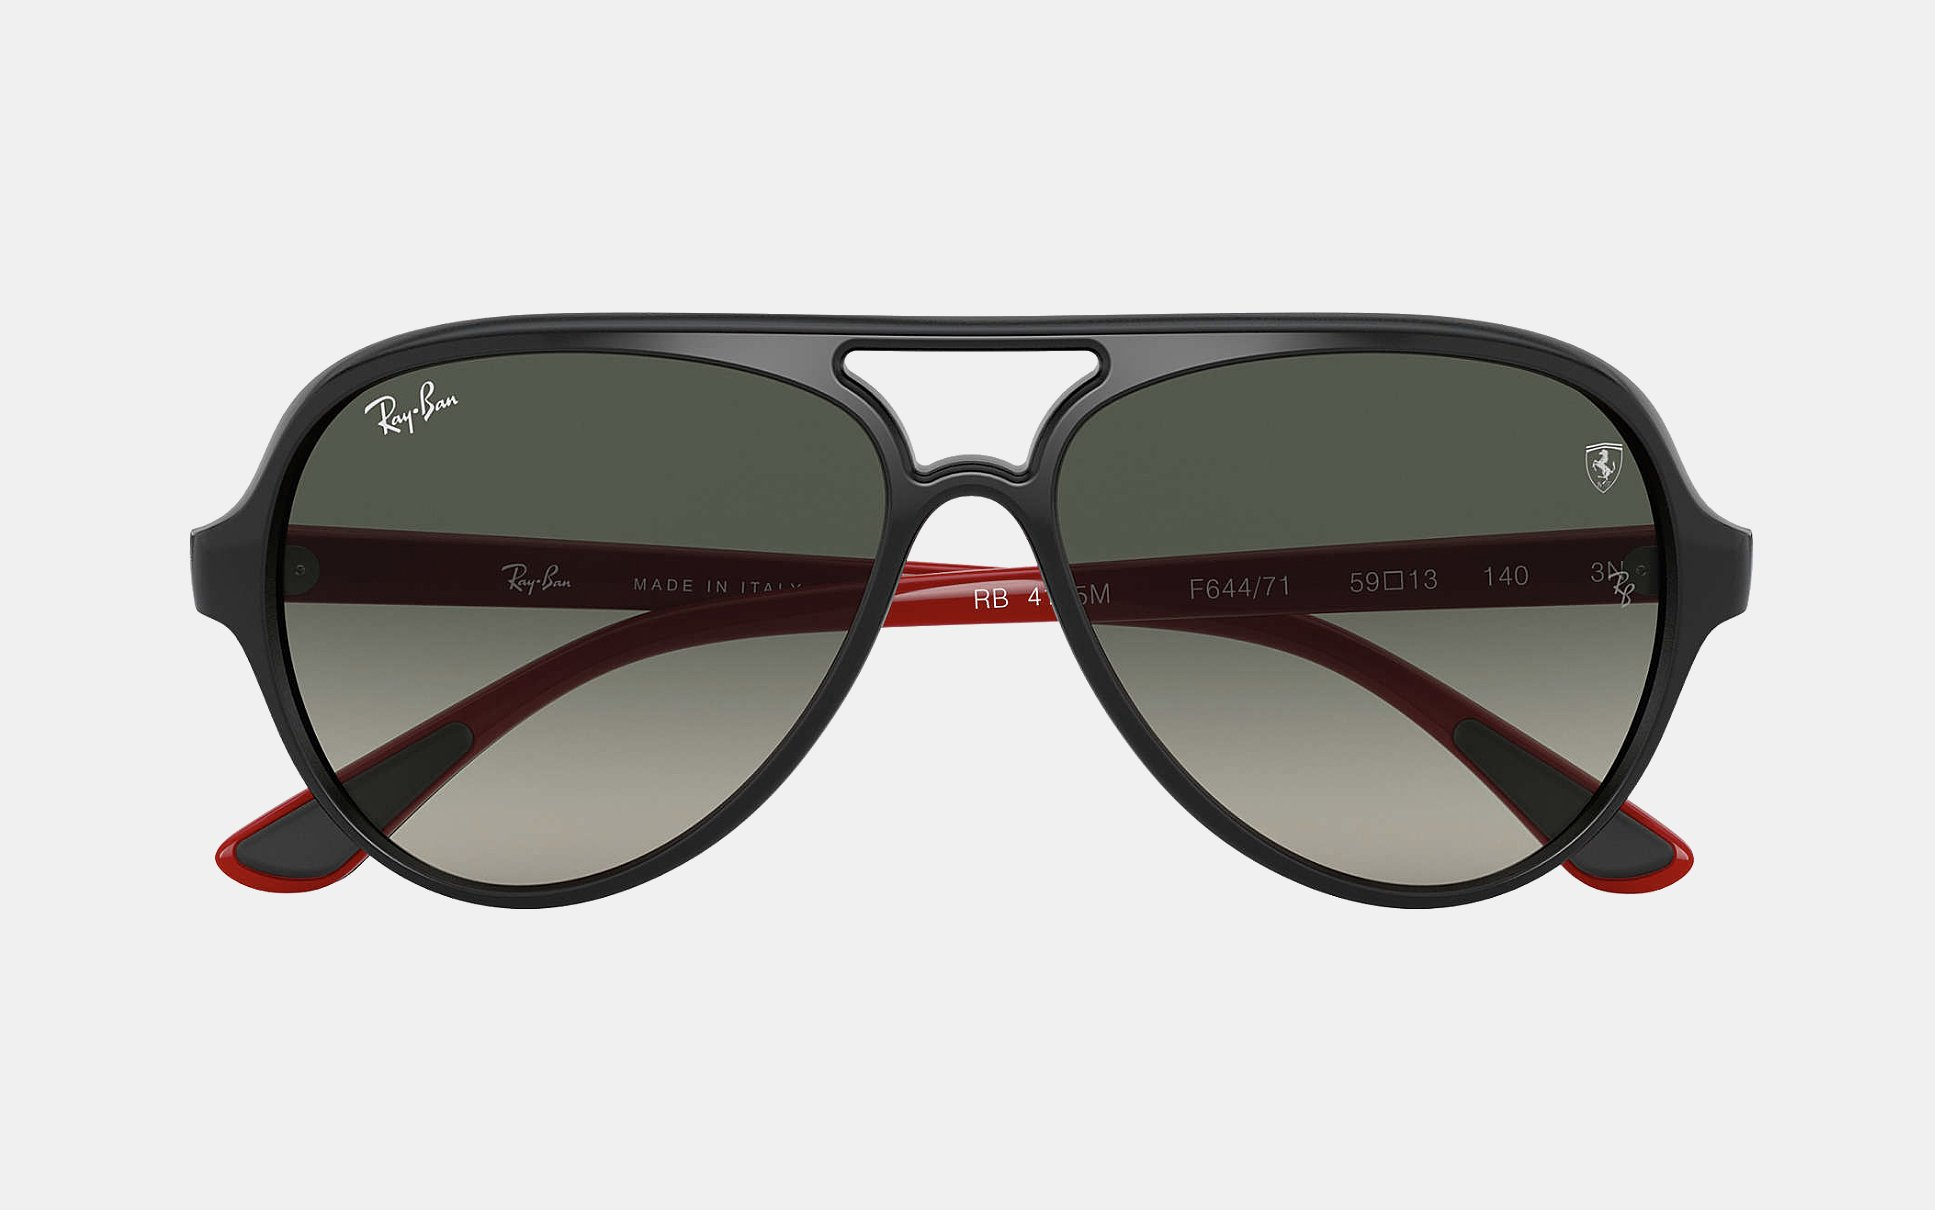 Ray-Ban Scuderia Ferrari Collection Sunglasses